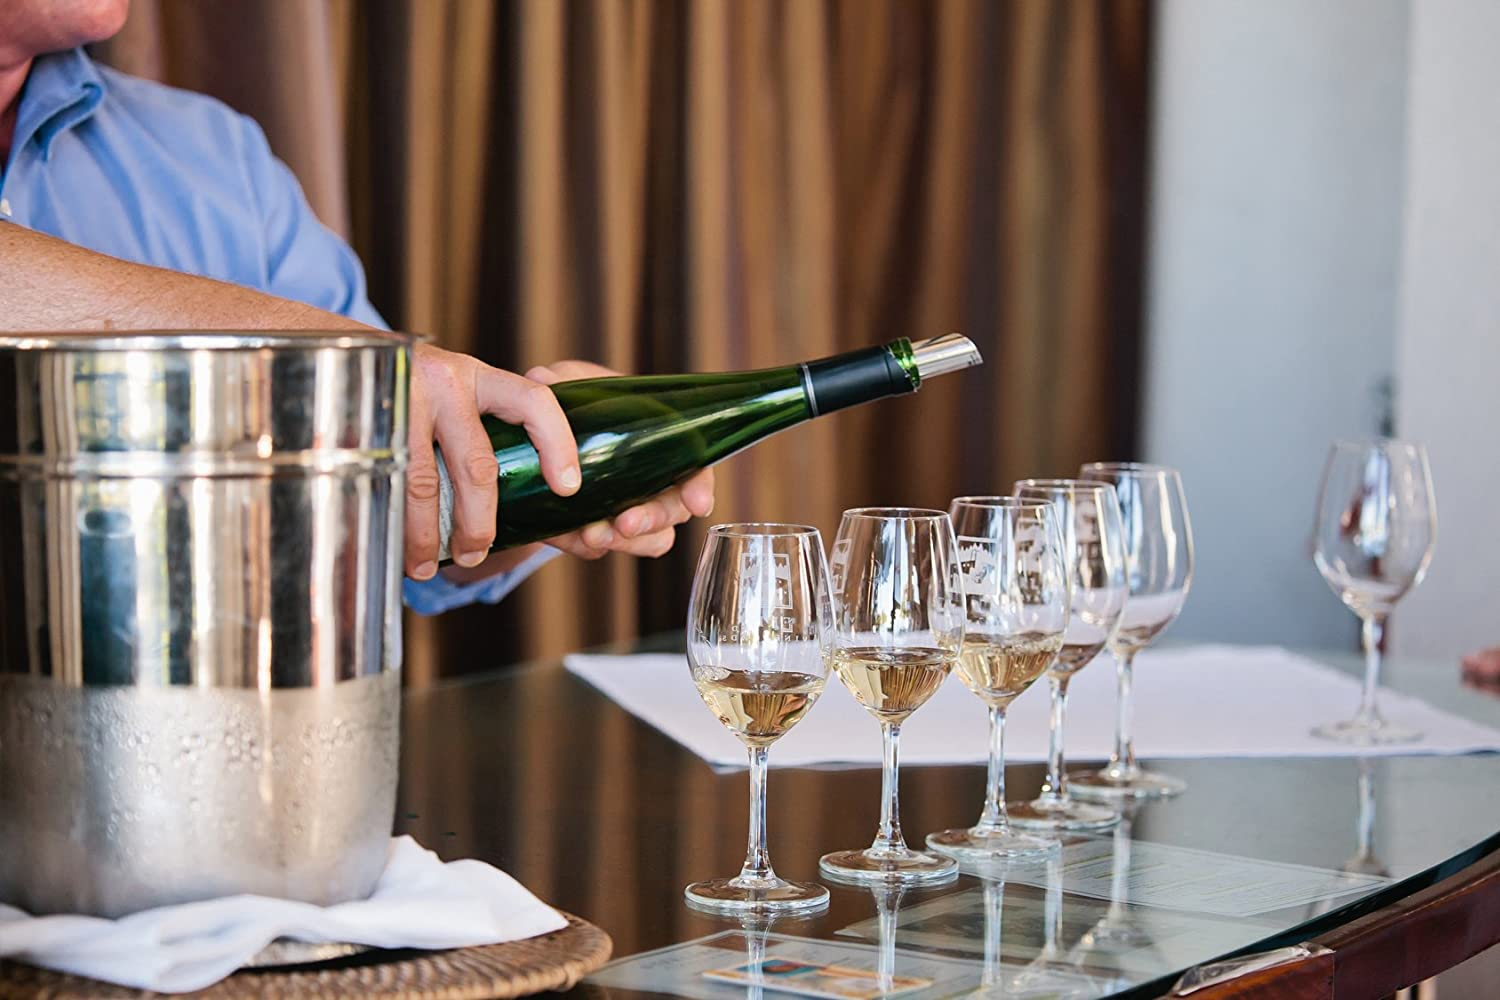 Buy bottle pour spouts for your kitchen and party time